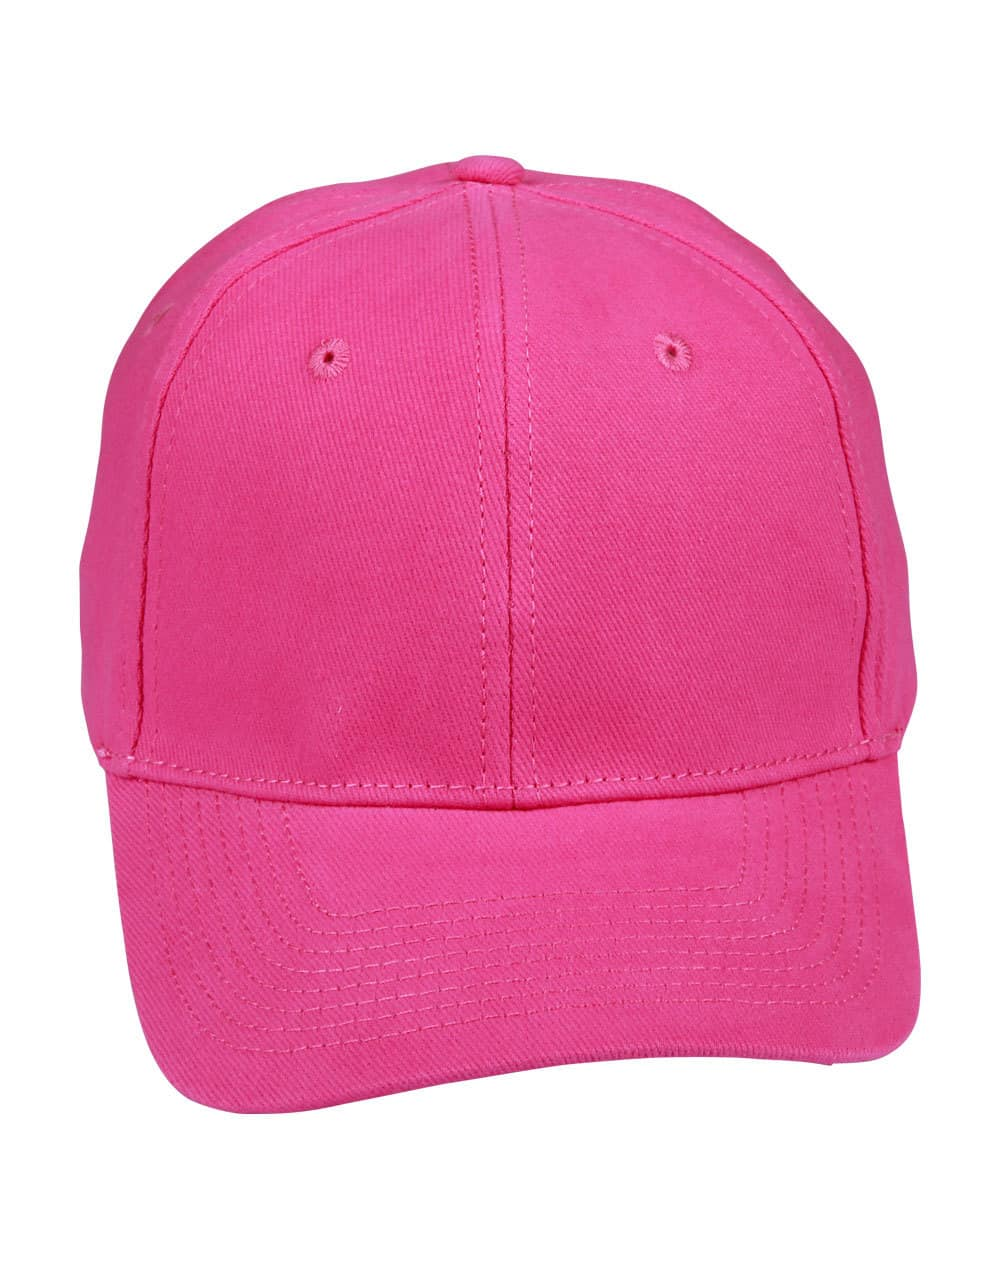 Hot Pink Heavy Brushed Cotton Cap